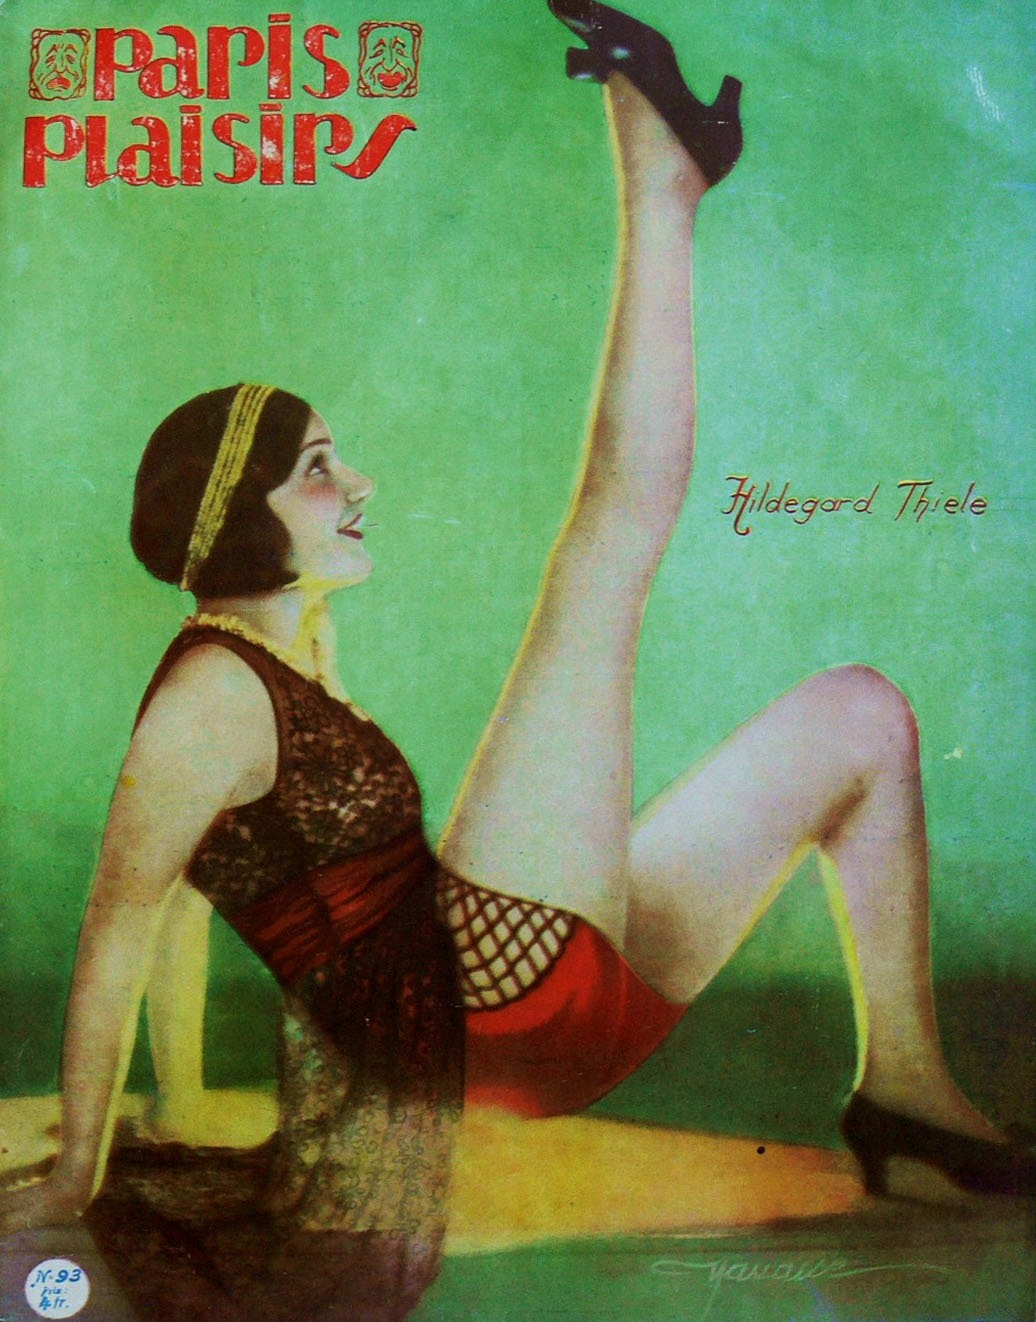 whataboutbobbed:  Hildegard Thiele on the March 1930 cover of Paris Plaisirs